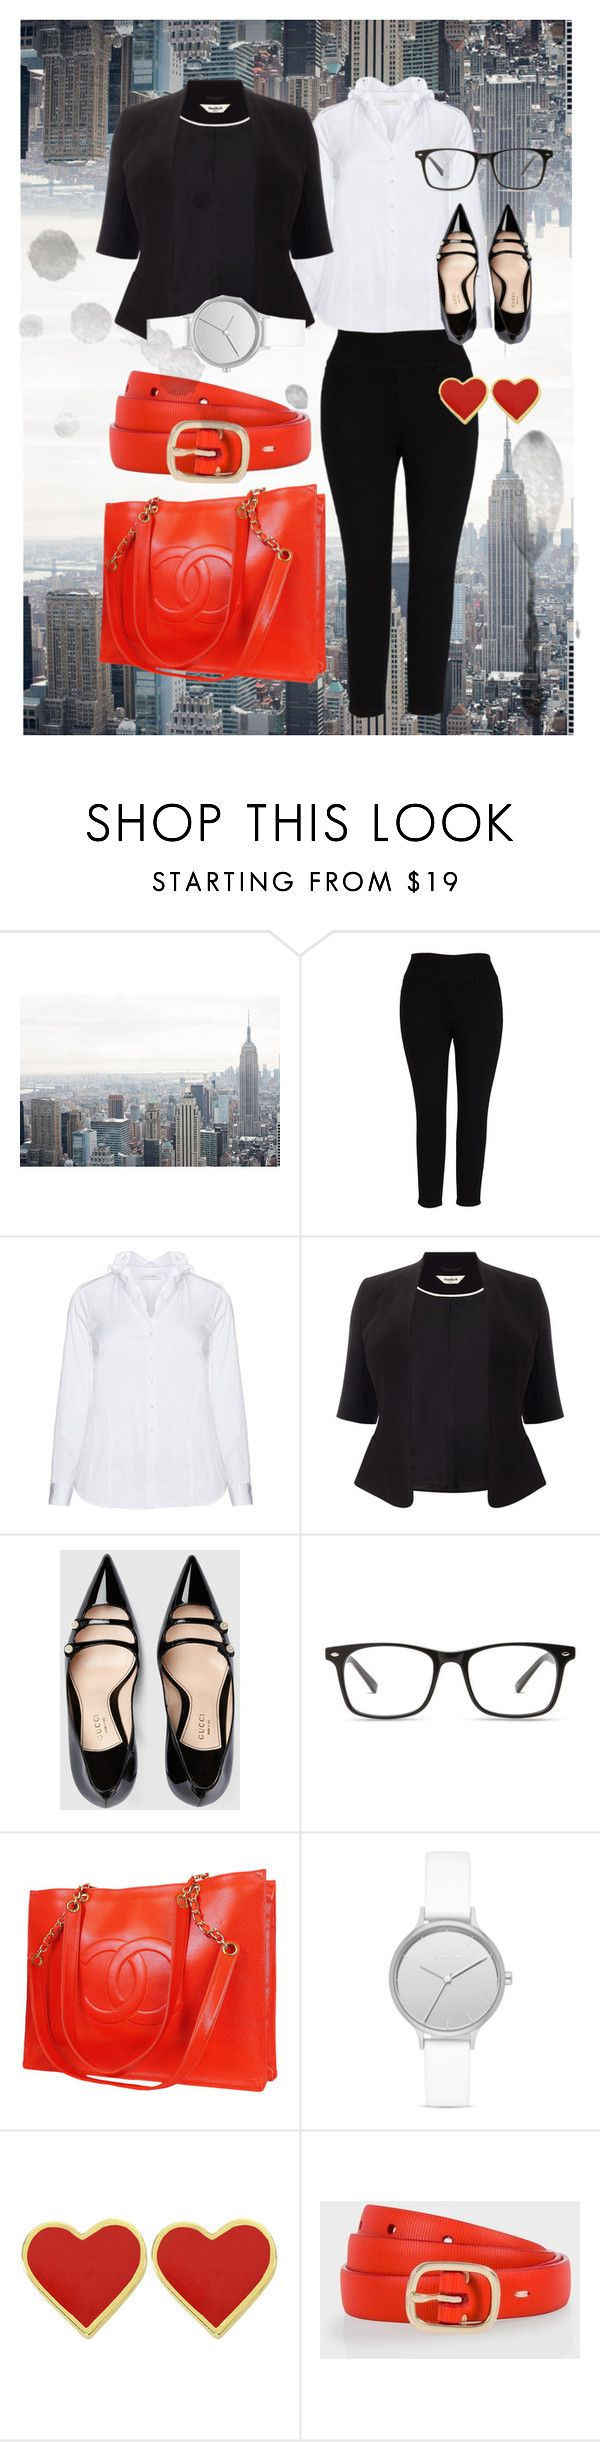 """Office day."" by ro-mondryk on Polyvore featuring Melissa McCarthy Seven7, Eterna, Studio 8, Gucci, Chanel, Skagen, Paul Smith and plus size clothing"